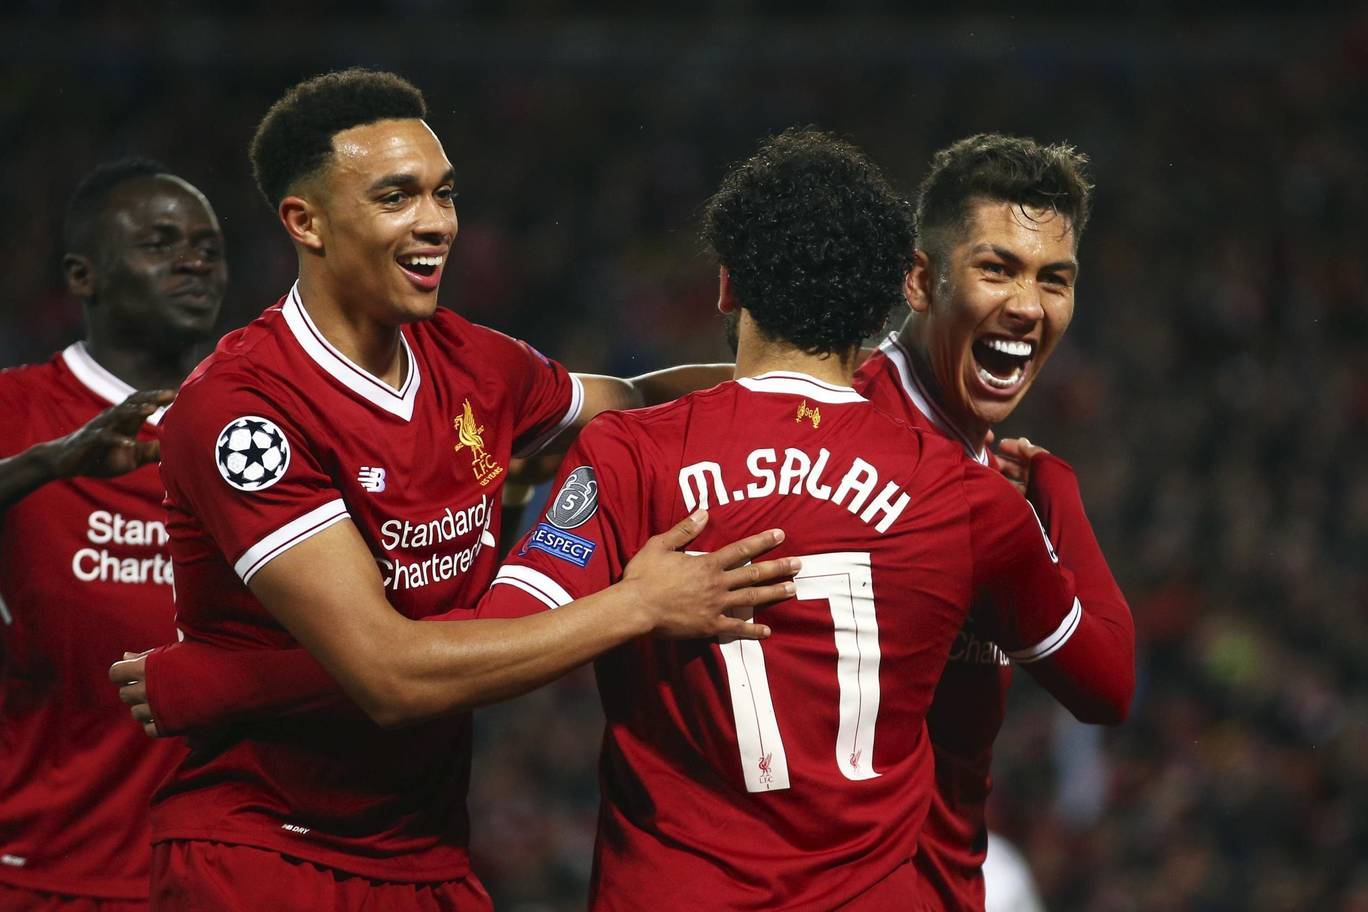 AS Roma – Liverpool Champions League 2/05/2018